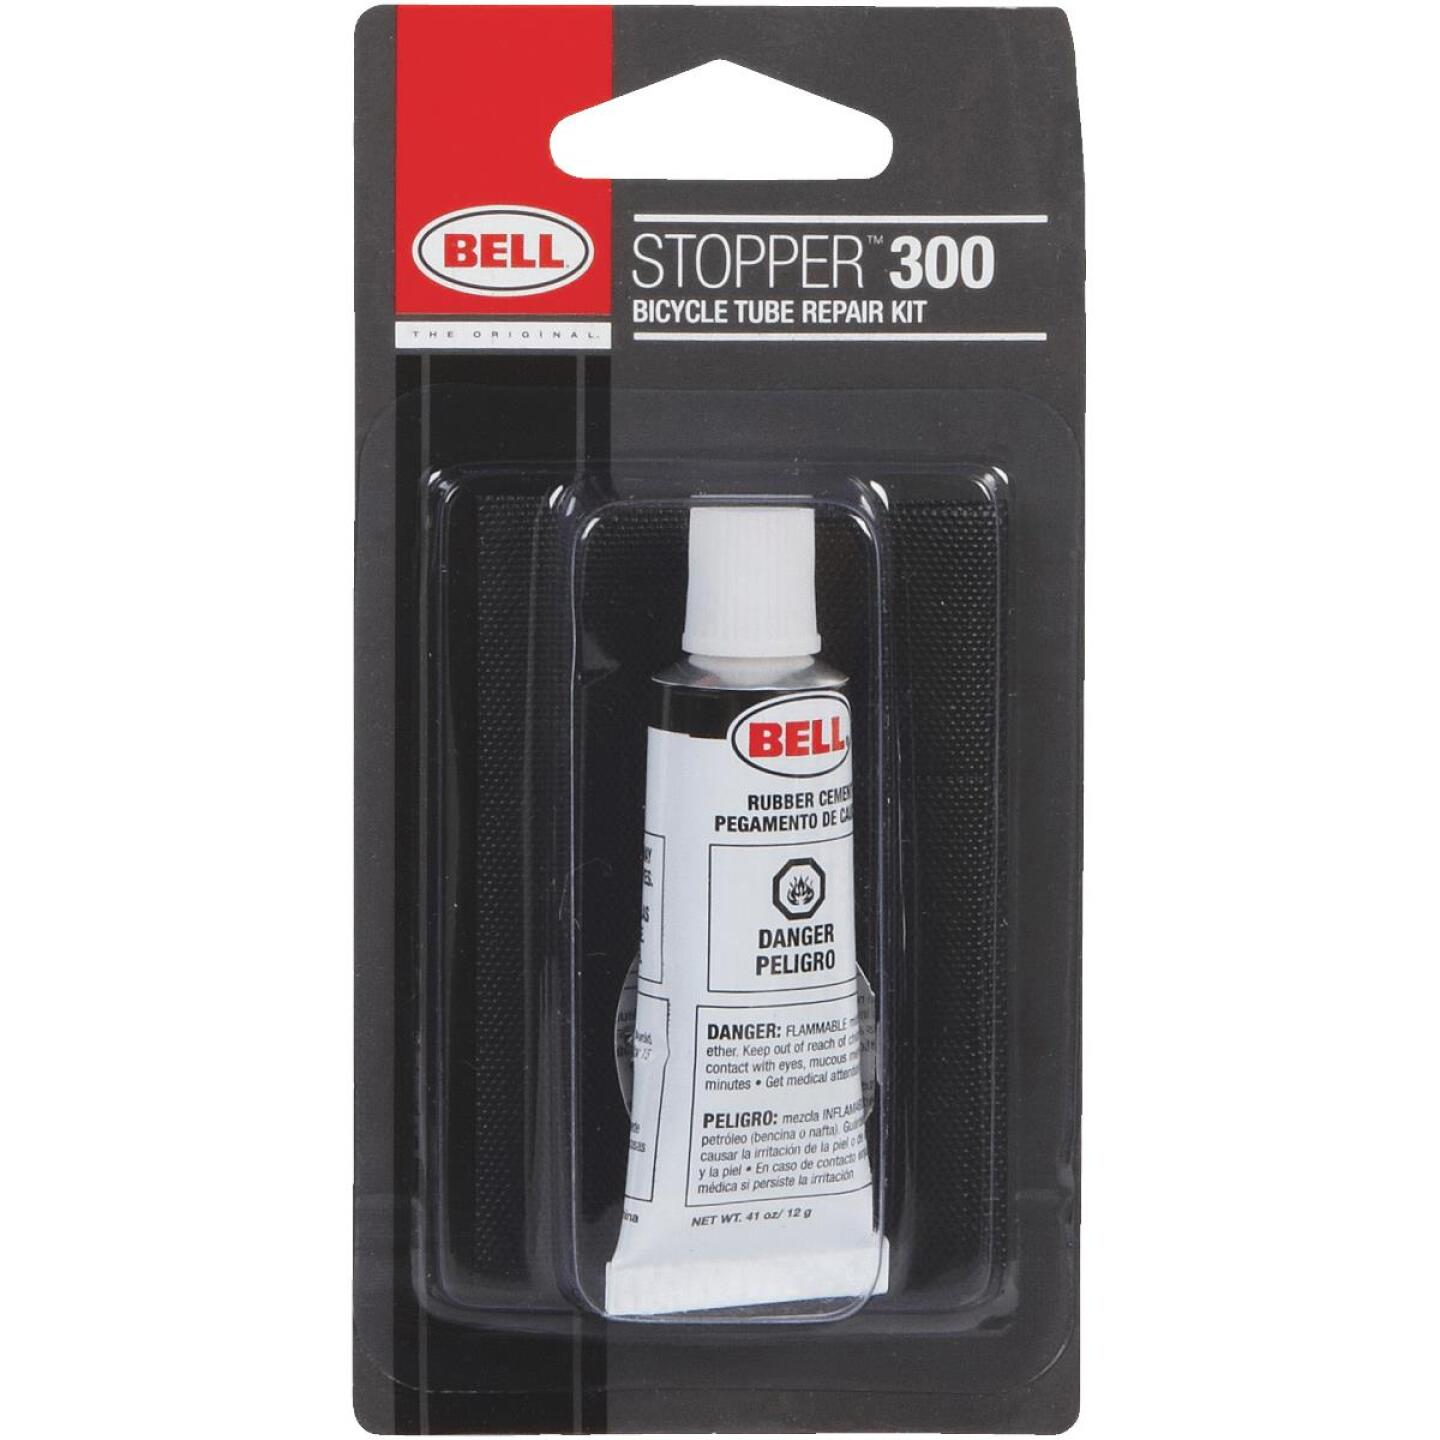 Bell Sports Stopper 300 4-Patch Bicycle Tube Repair Kit Image 1